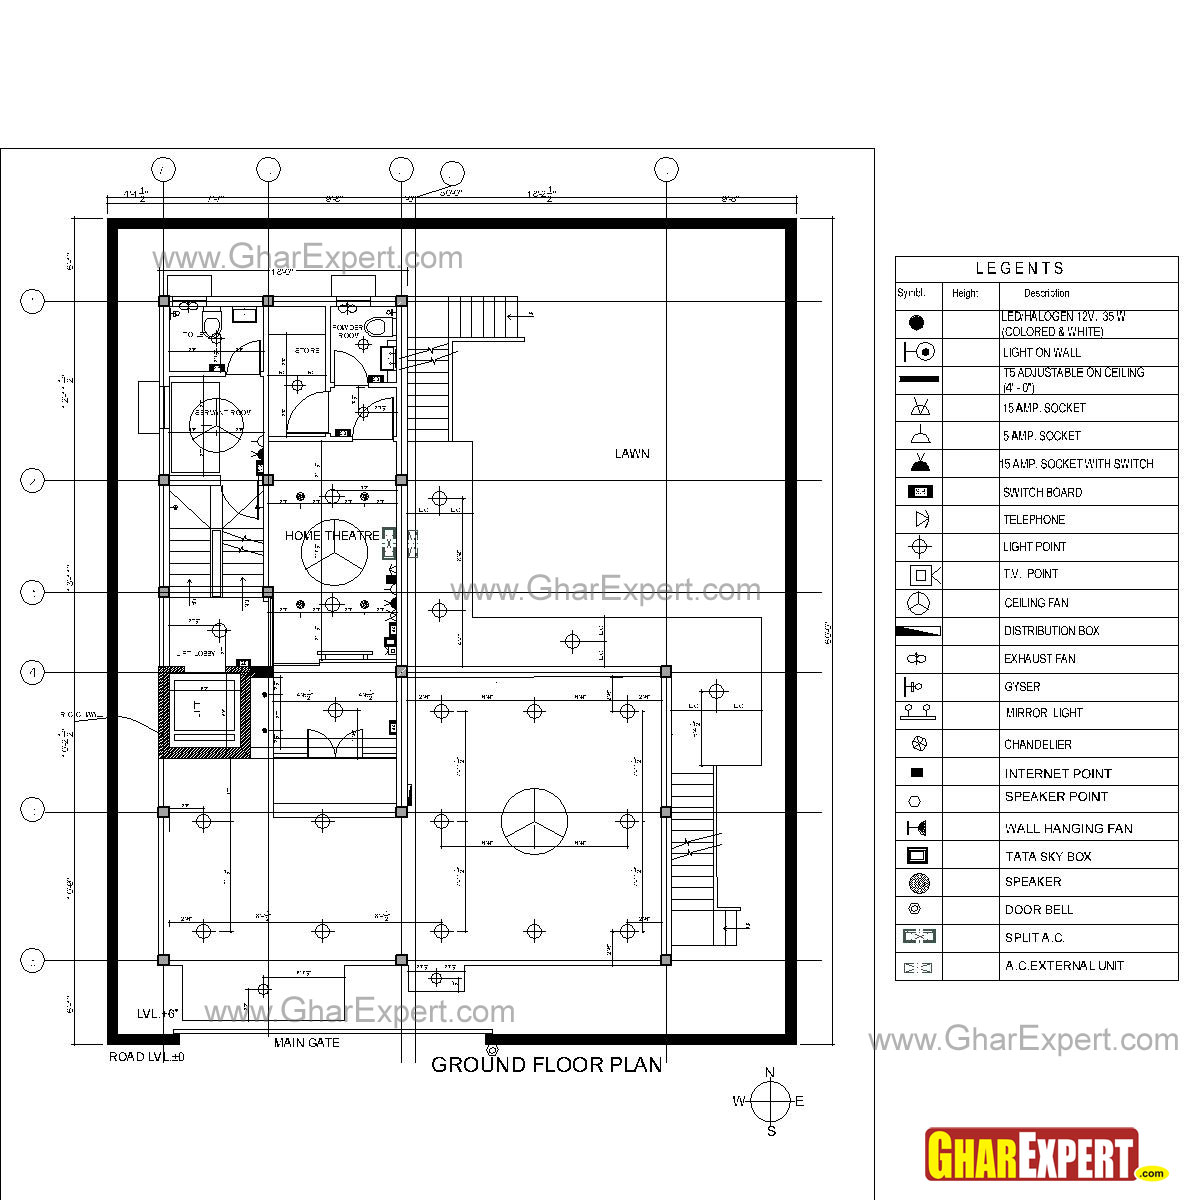 Sample Architectural Structure Plumbing And Electrical Drawings Wiring Diagrams